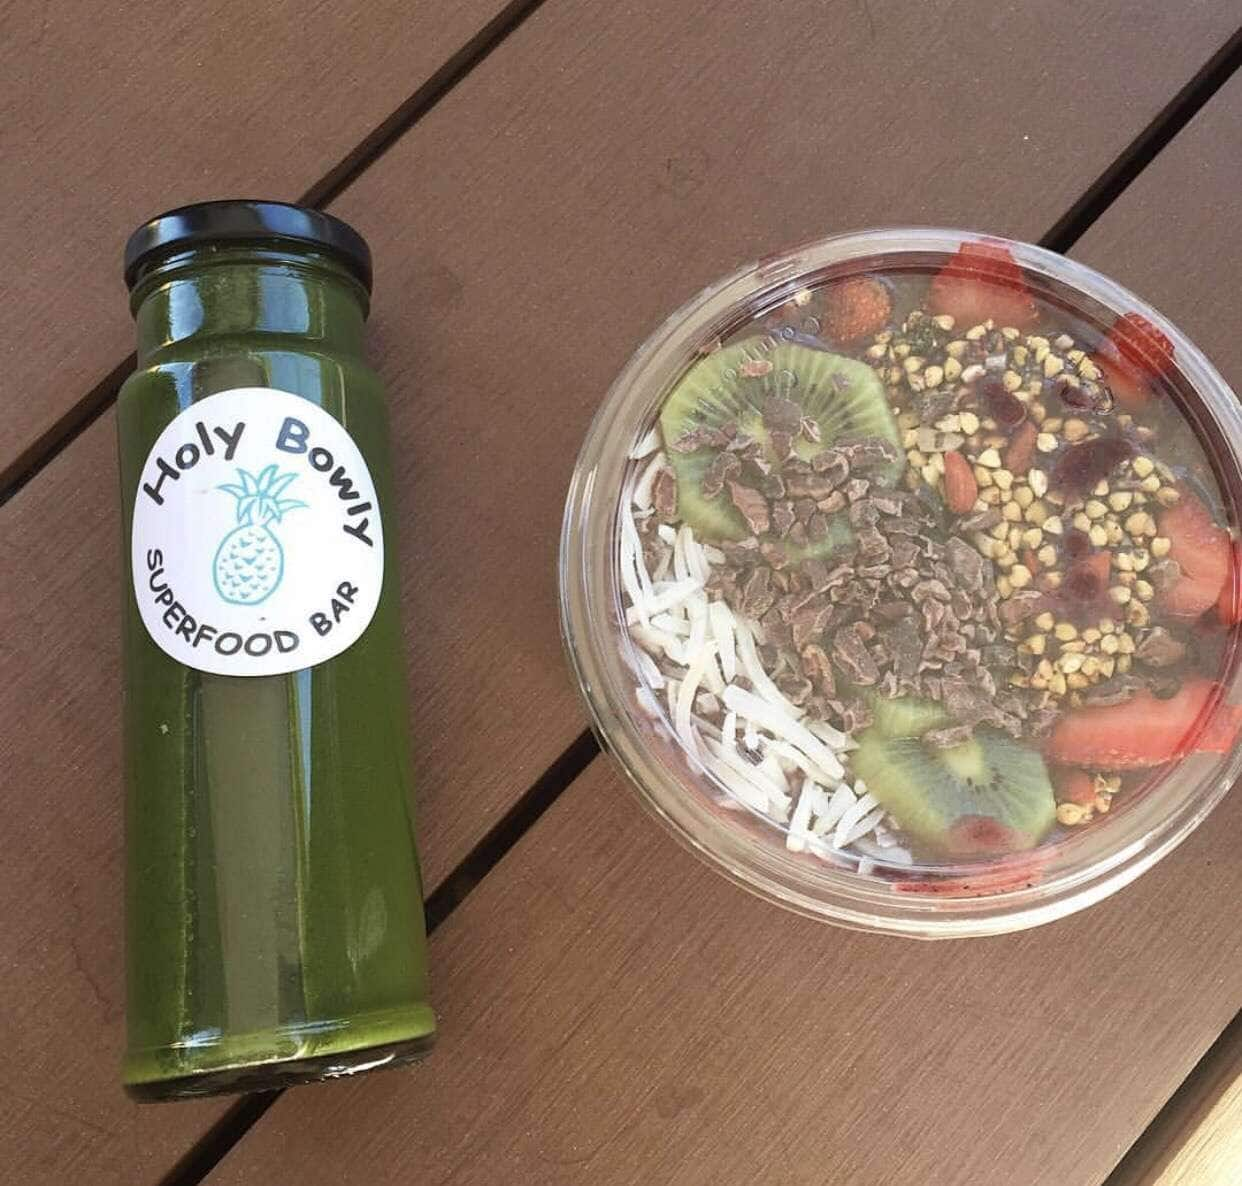 Holy Bowly Superfood Bar